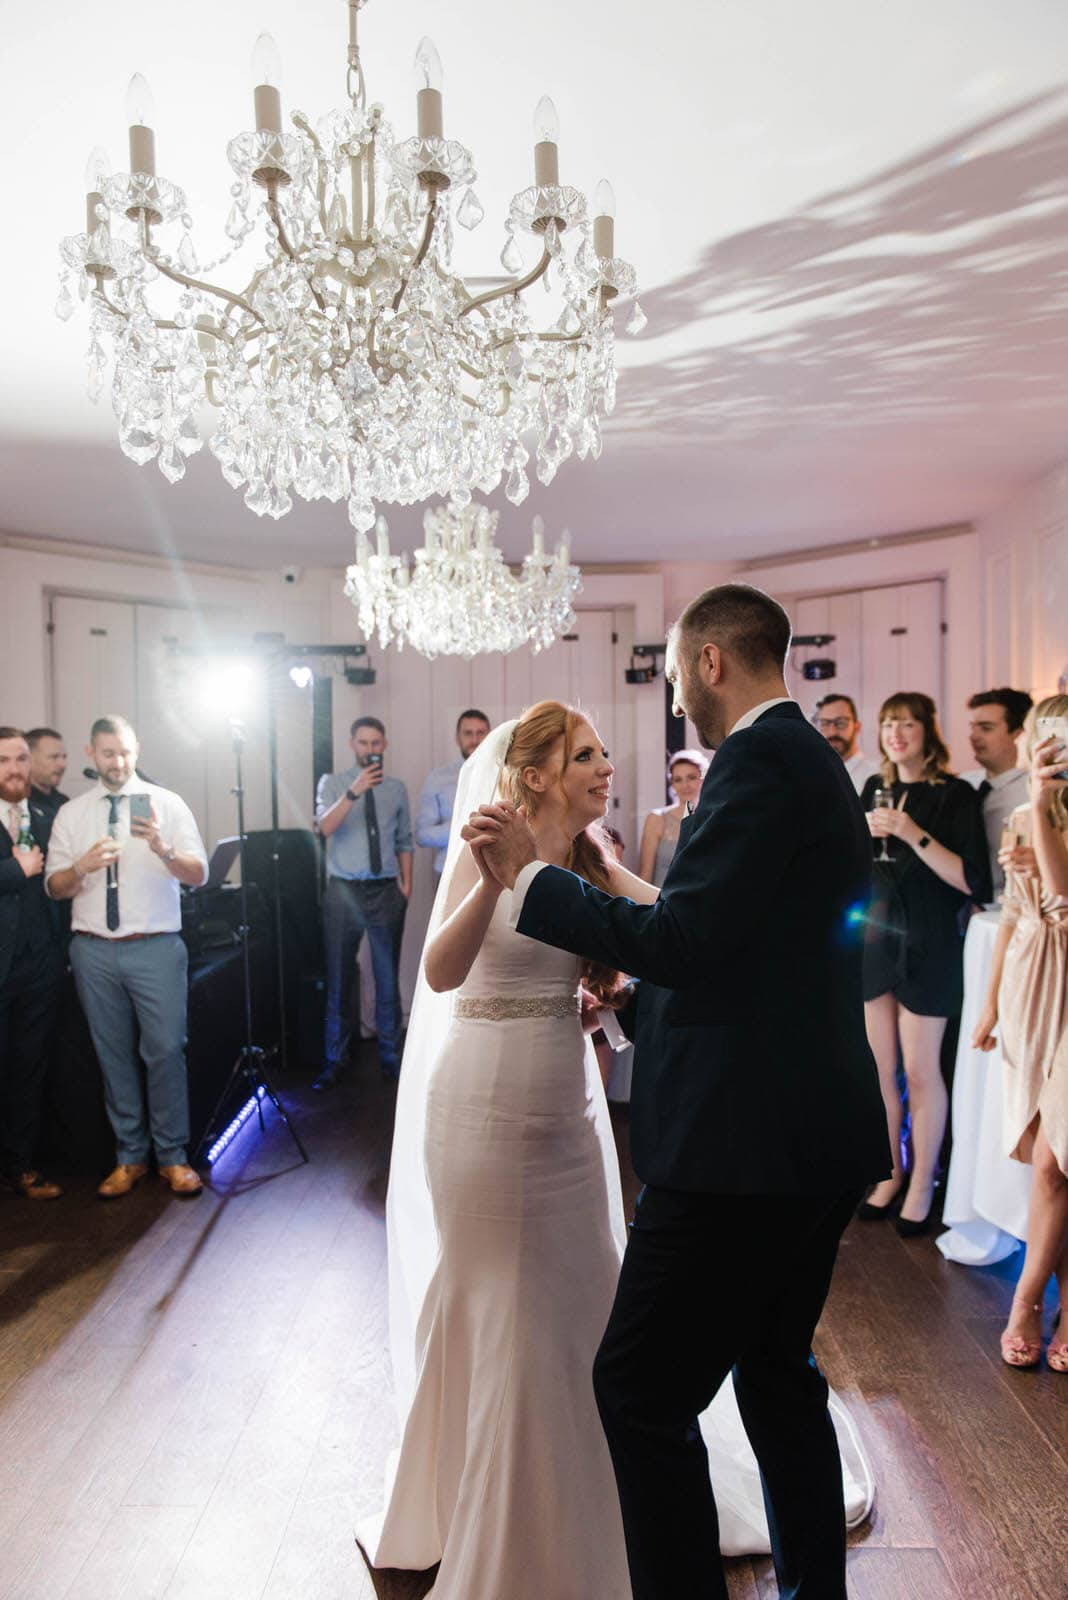 Bride and groom's first dance at the Old Vicarage wedding